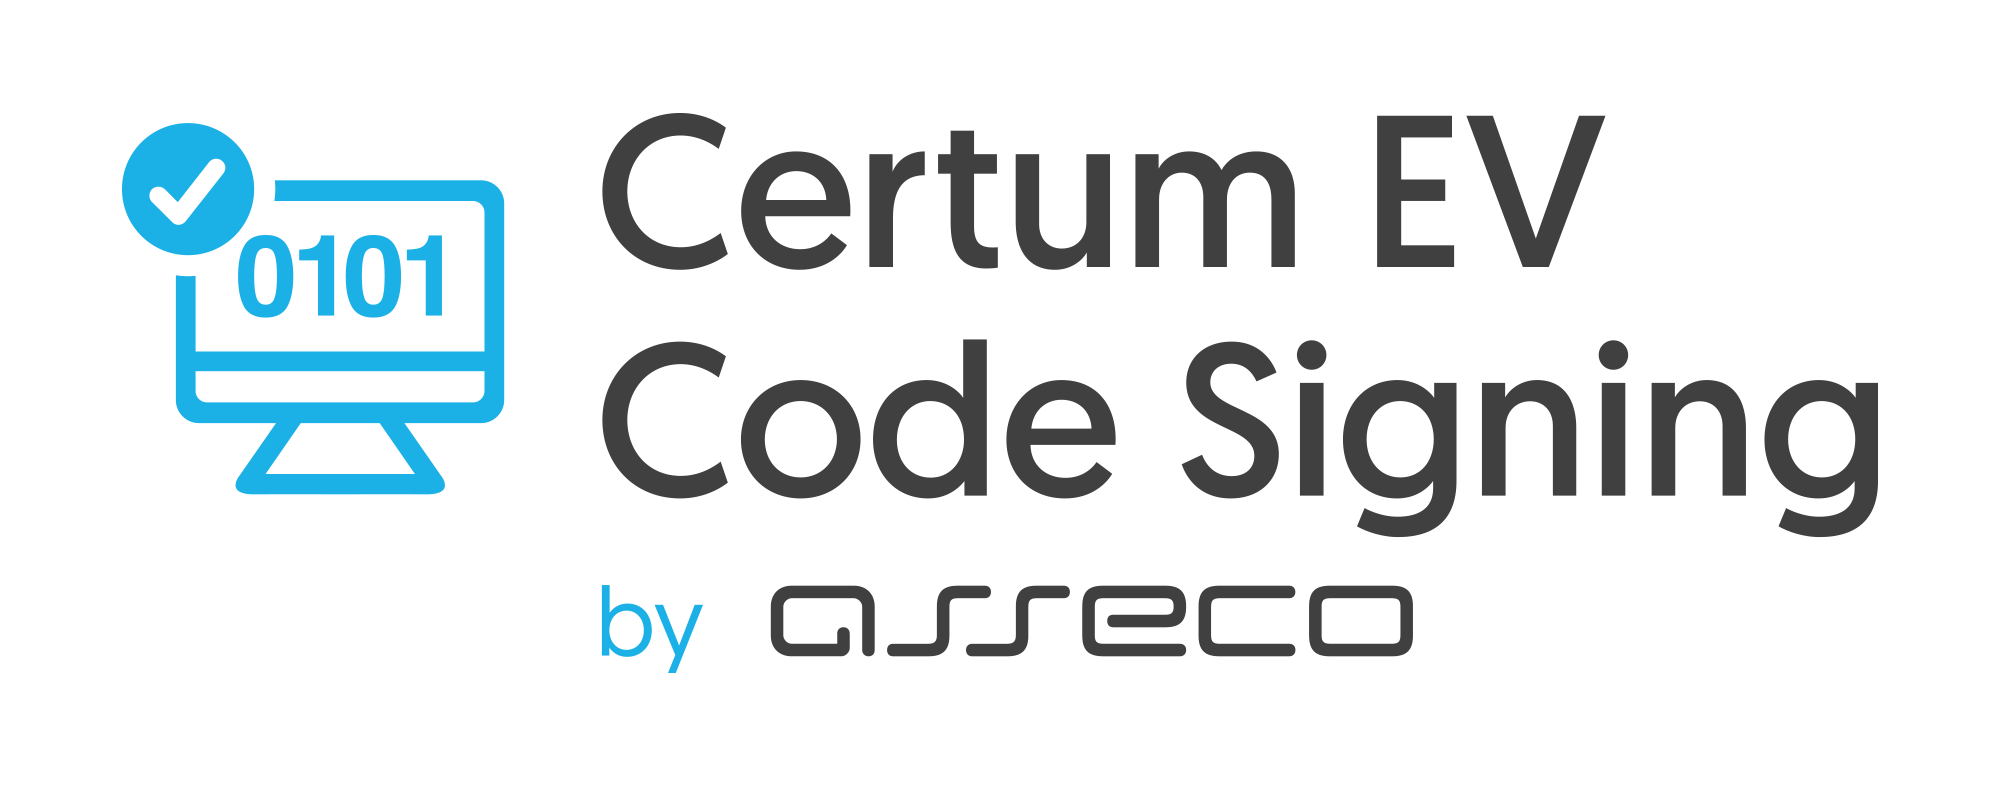 Microsoft Code Signing